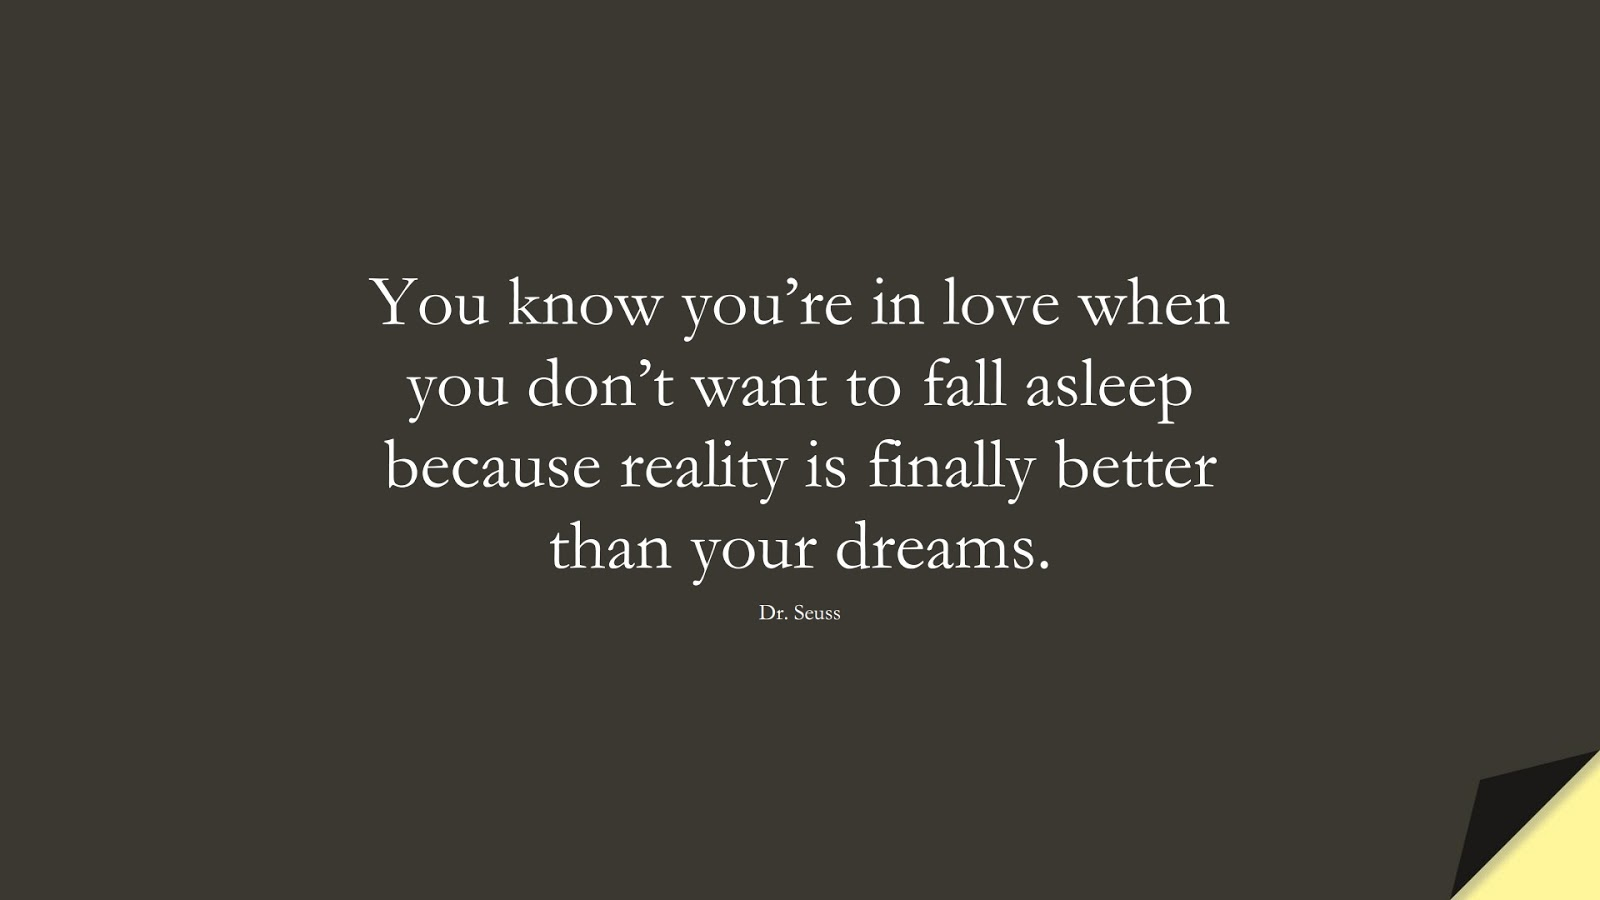 You know you're in love when you don't want to fall asleep because reality is finally better than your dreams. (Dr. Seuss);  #LoveQuotes